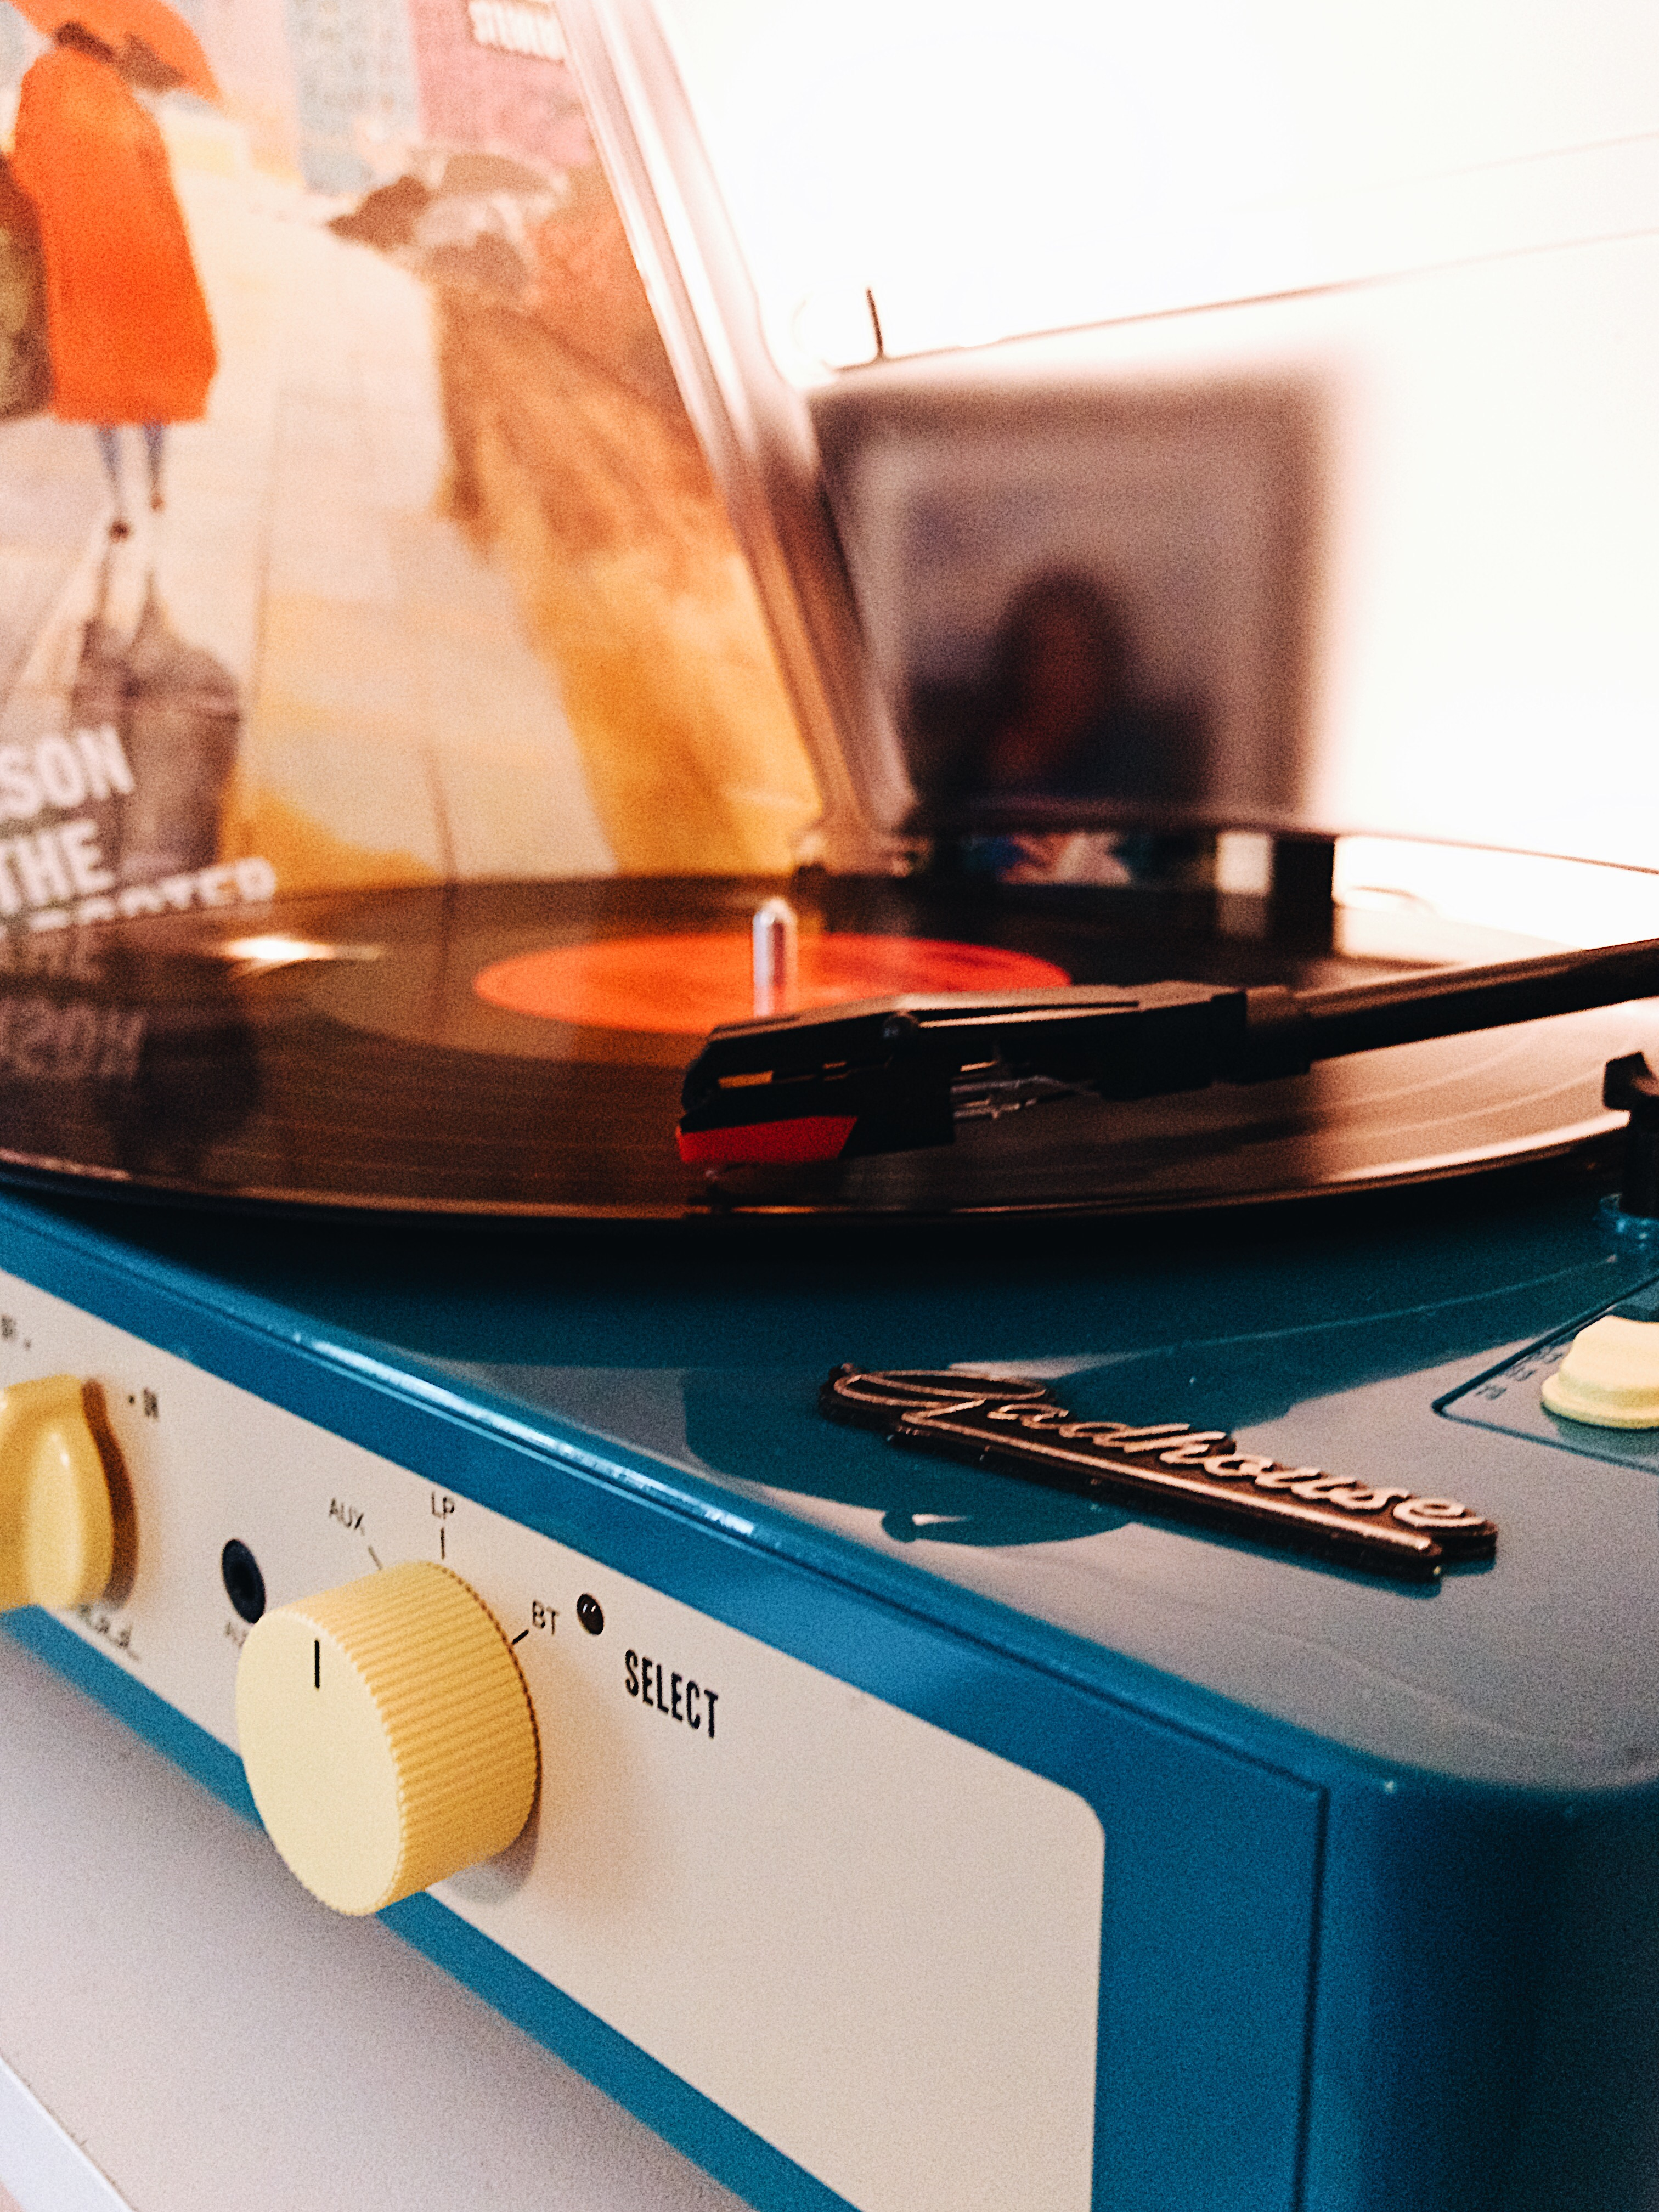 brad record player, neptoon records, brad, gadhouse record player, gadhouse turntable, record player, retro turntable, vinyl, record stores